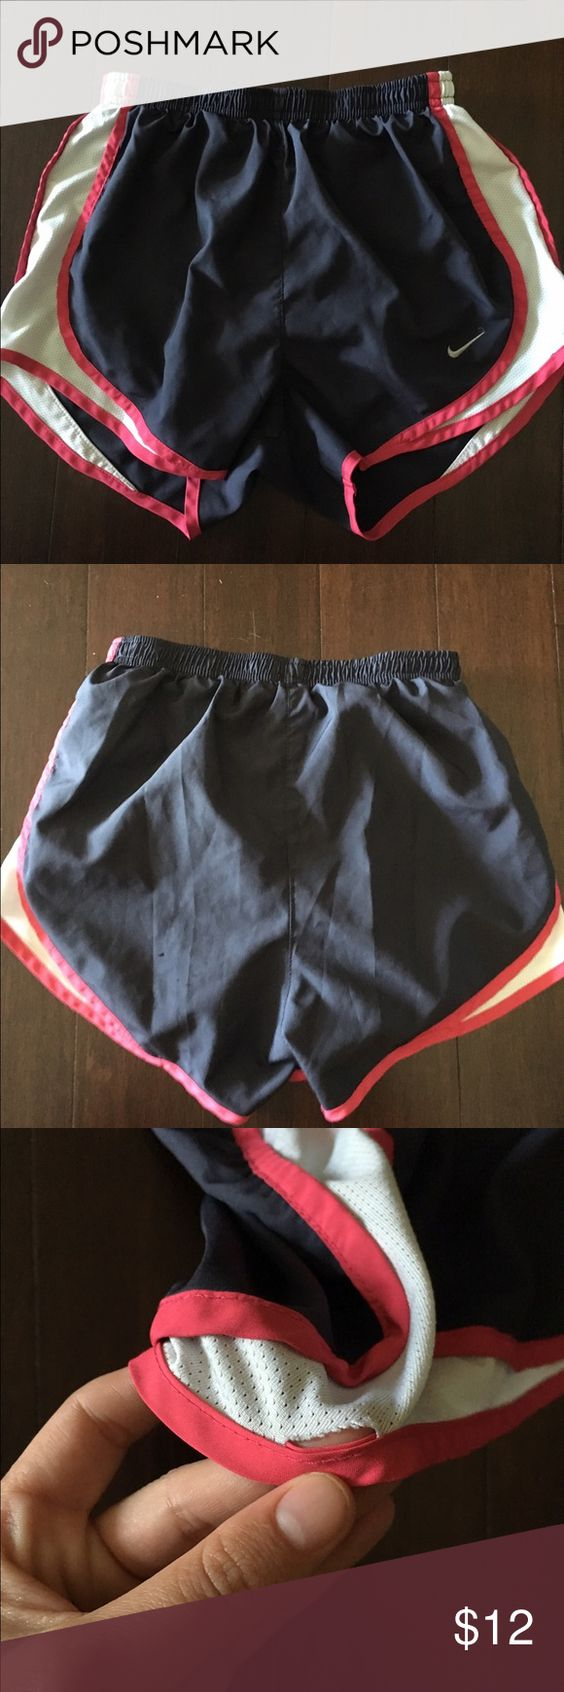 Nike Dri-Fit Running Shorts Minor flaw shown in pictures! Nike Shorts